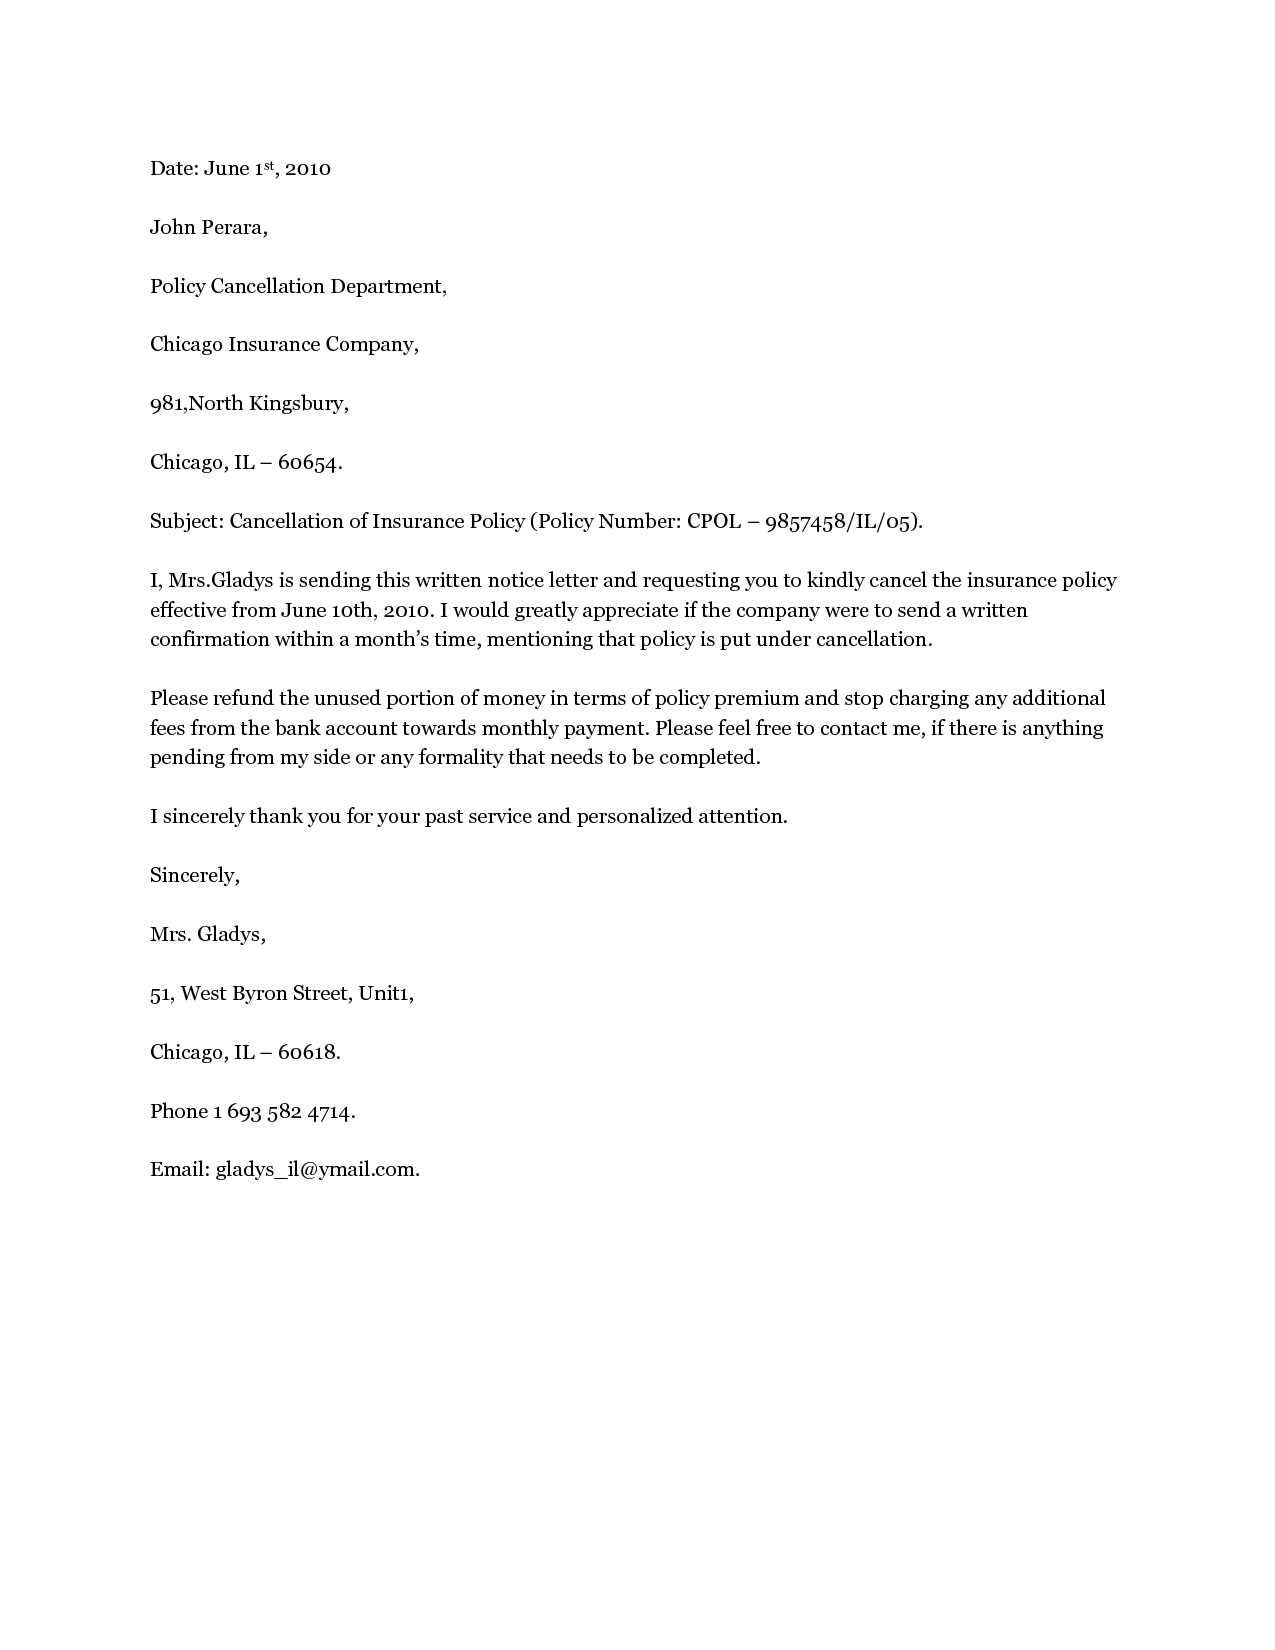 letter template for insurance cancellation  Insurance Policy Cancellation Letter Template Samples | Letter ...